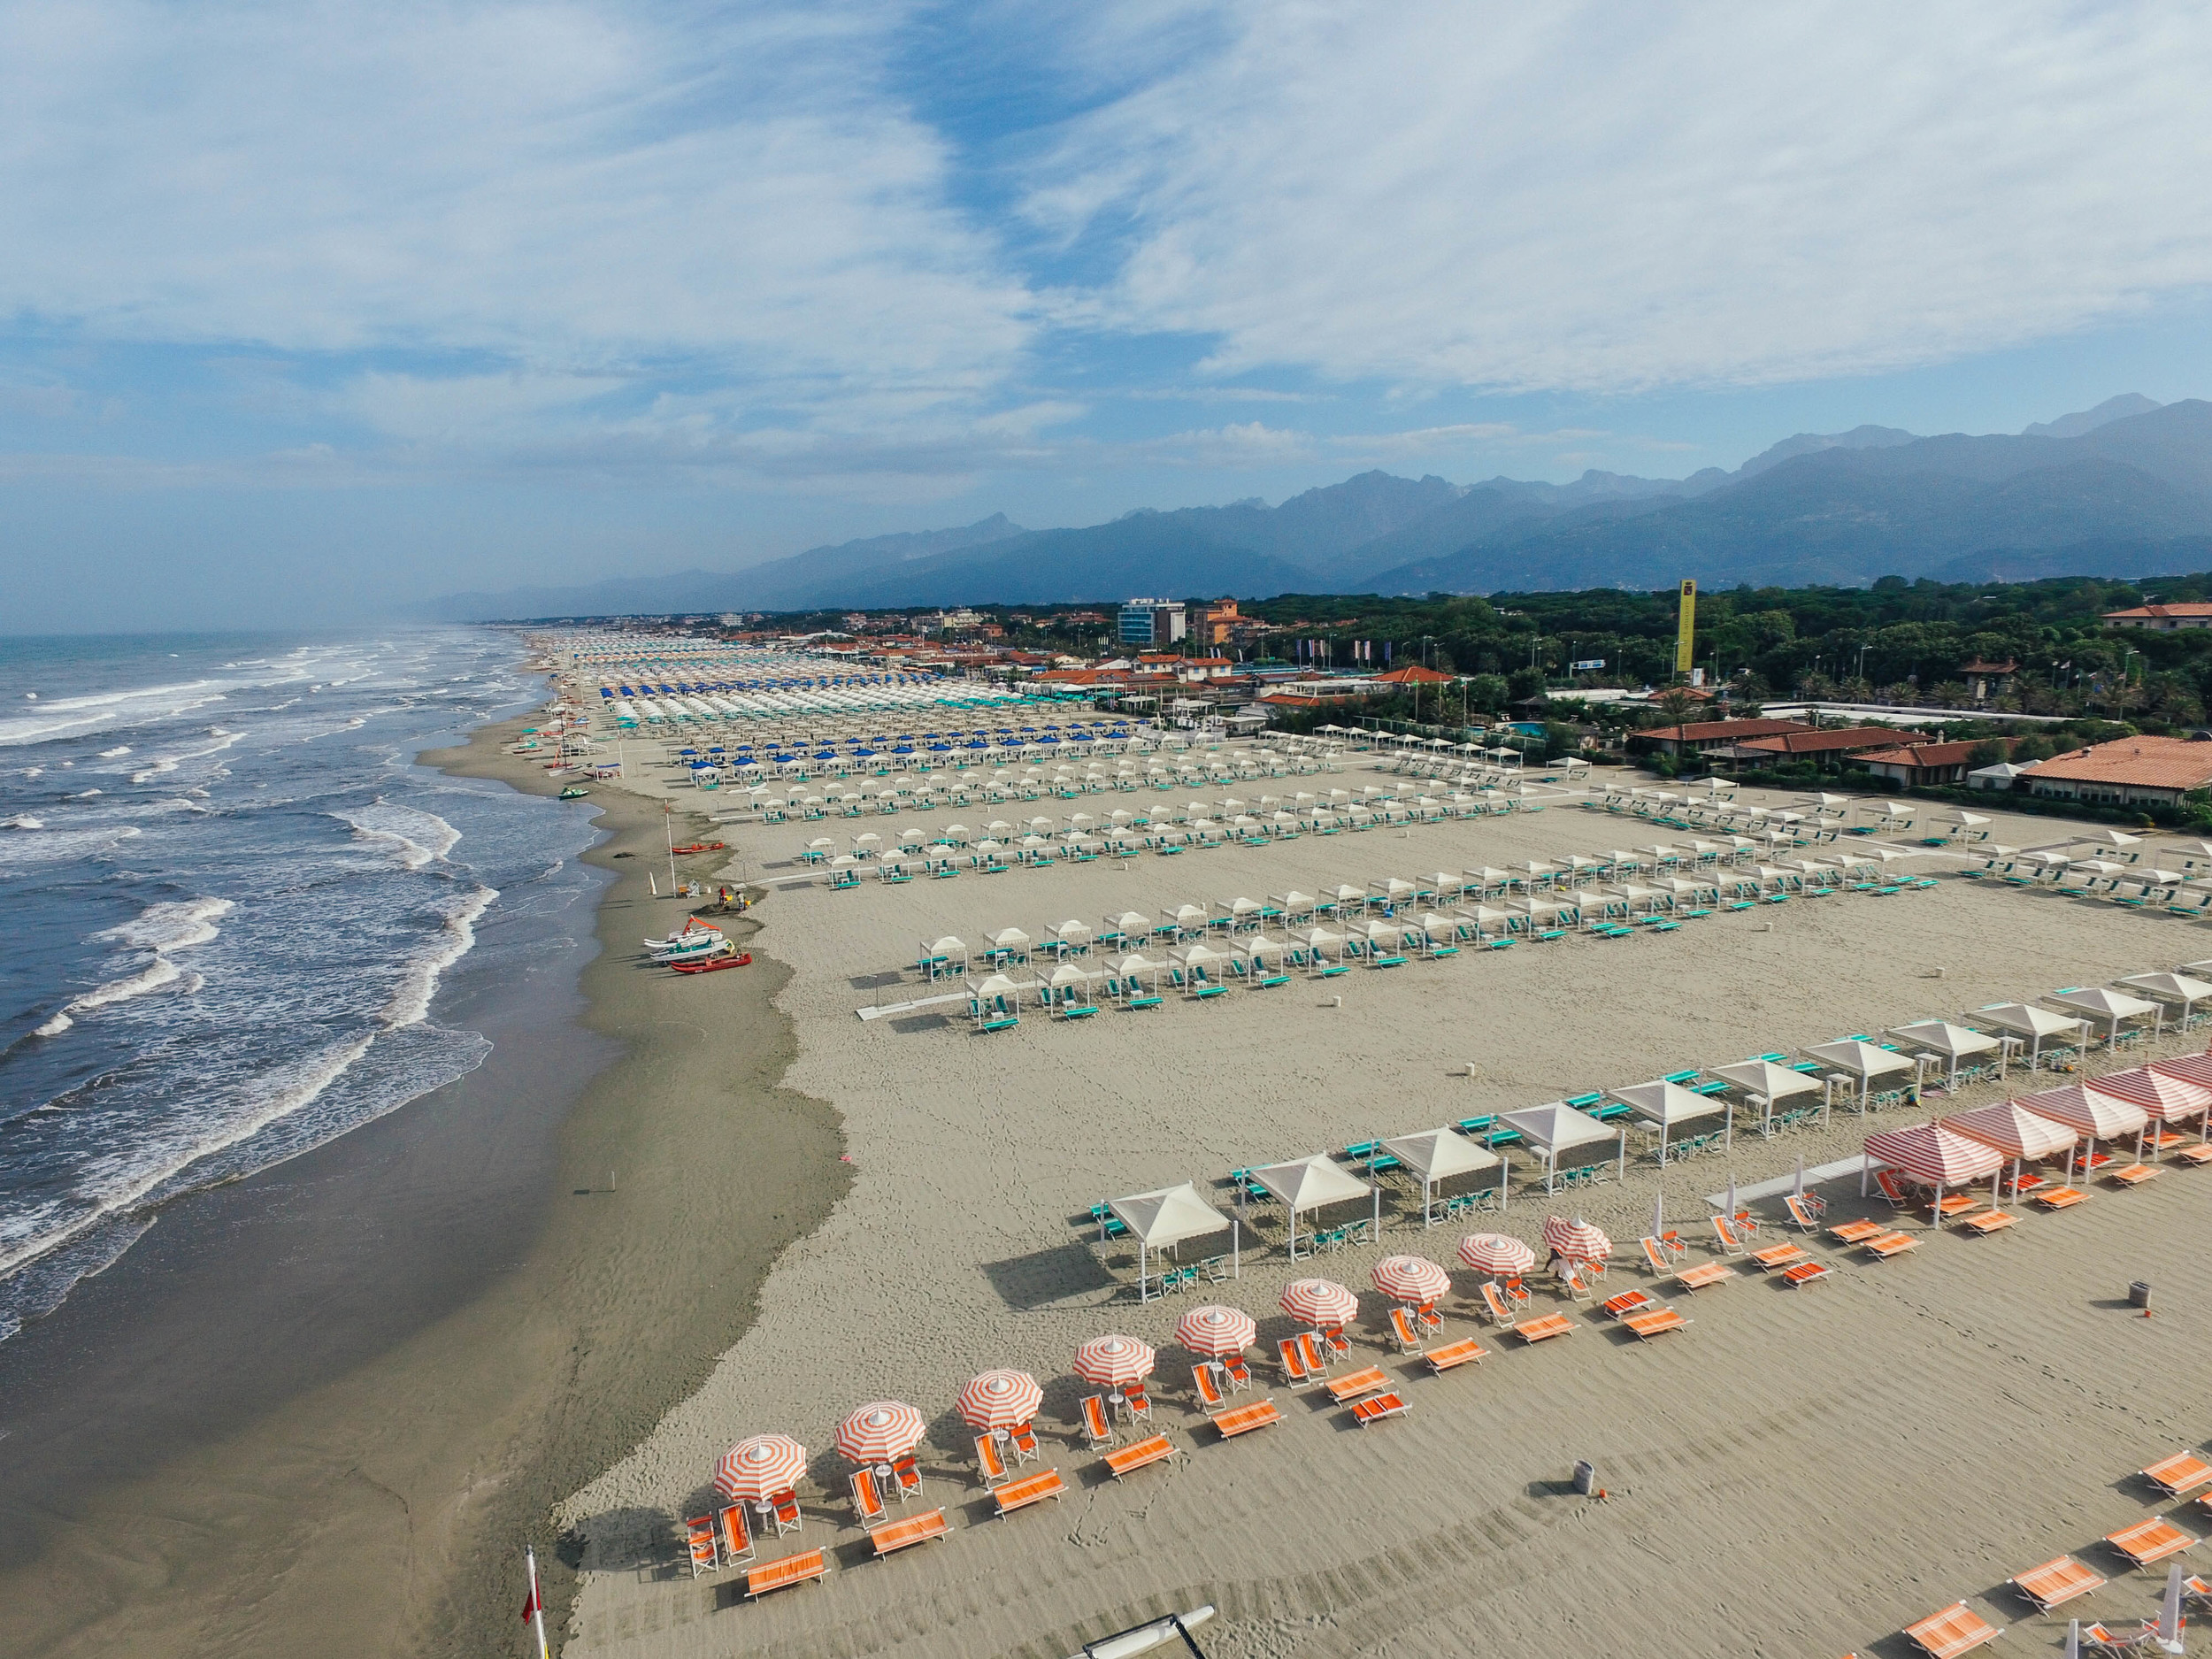 Drone photography in Lido di Camaoire. Beach & ocean shots.